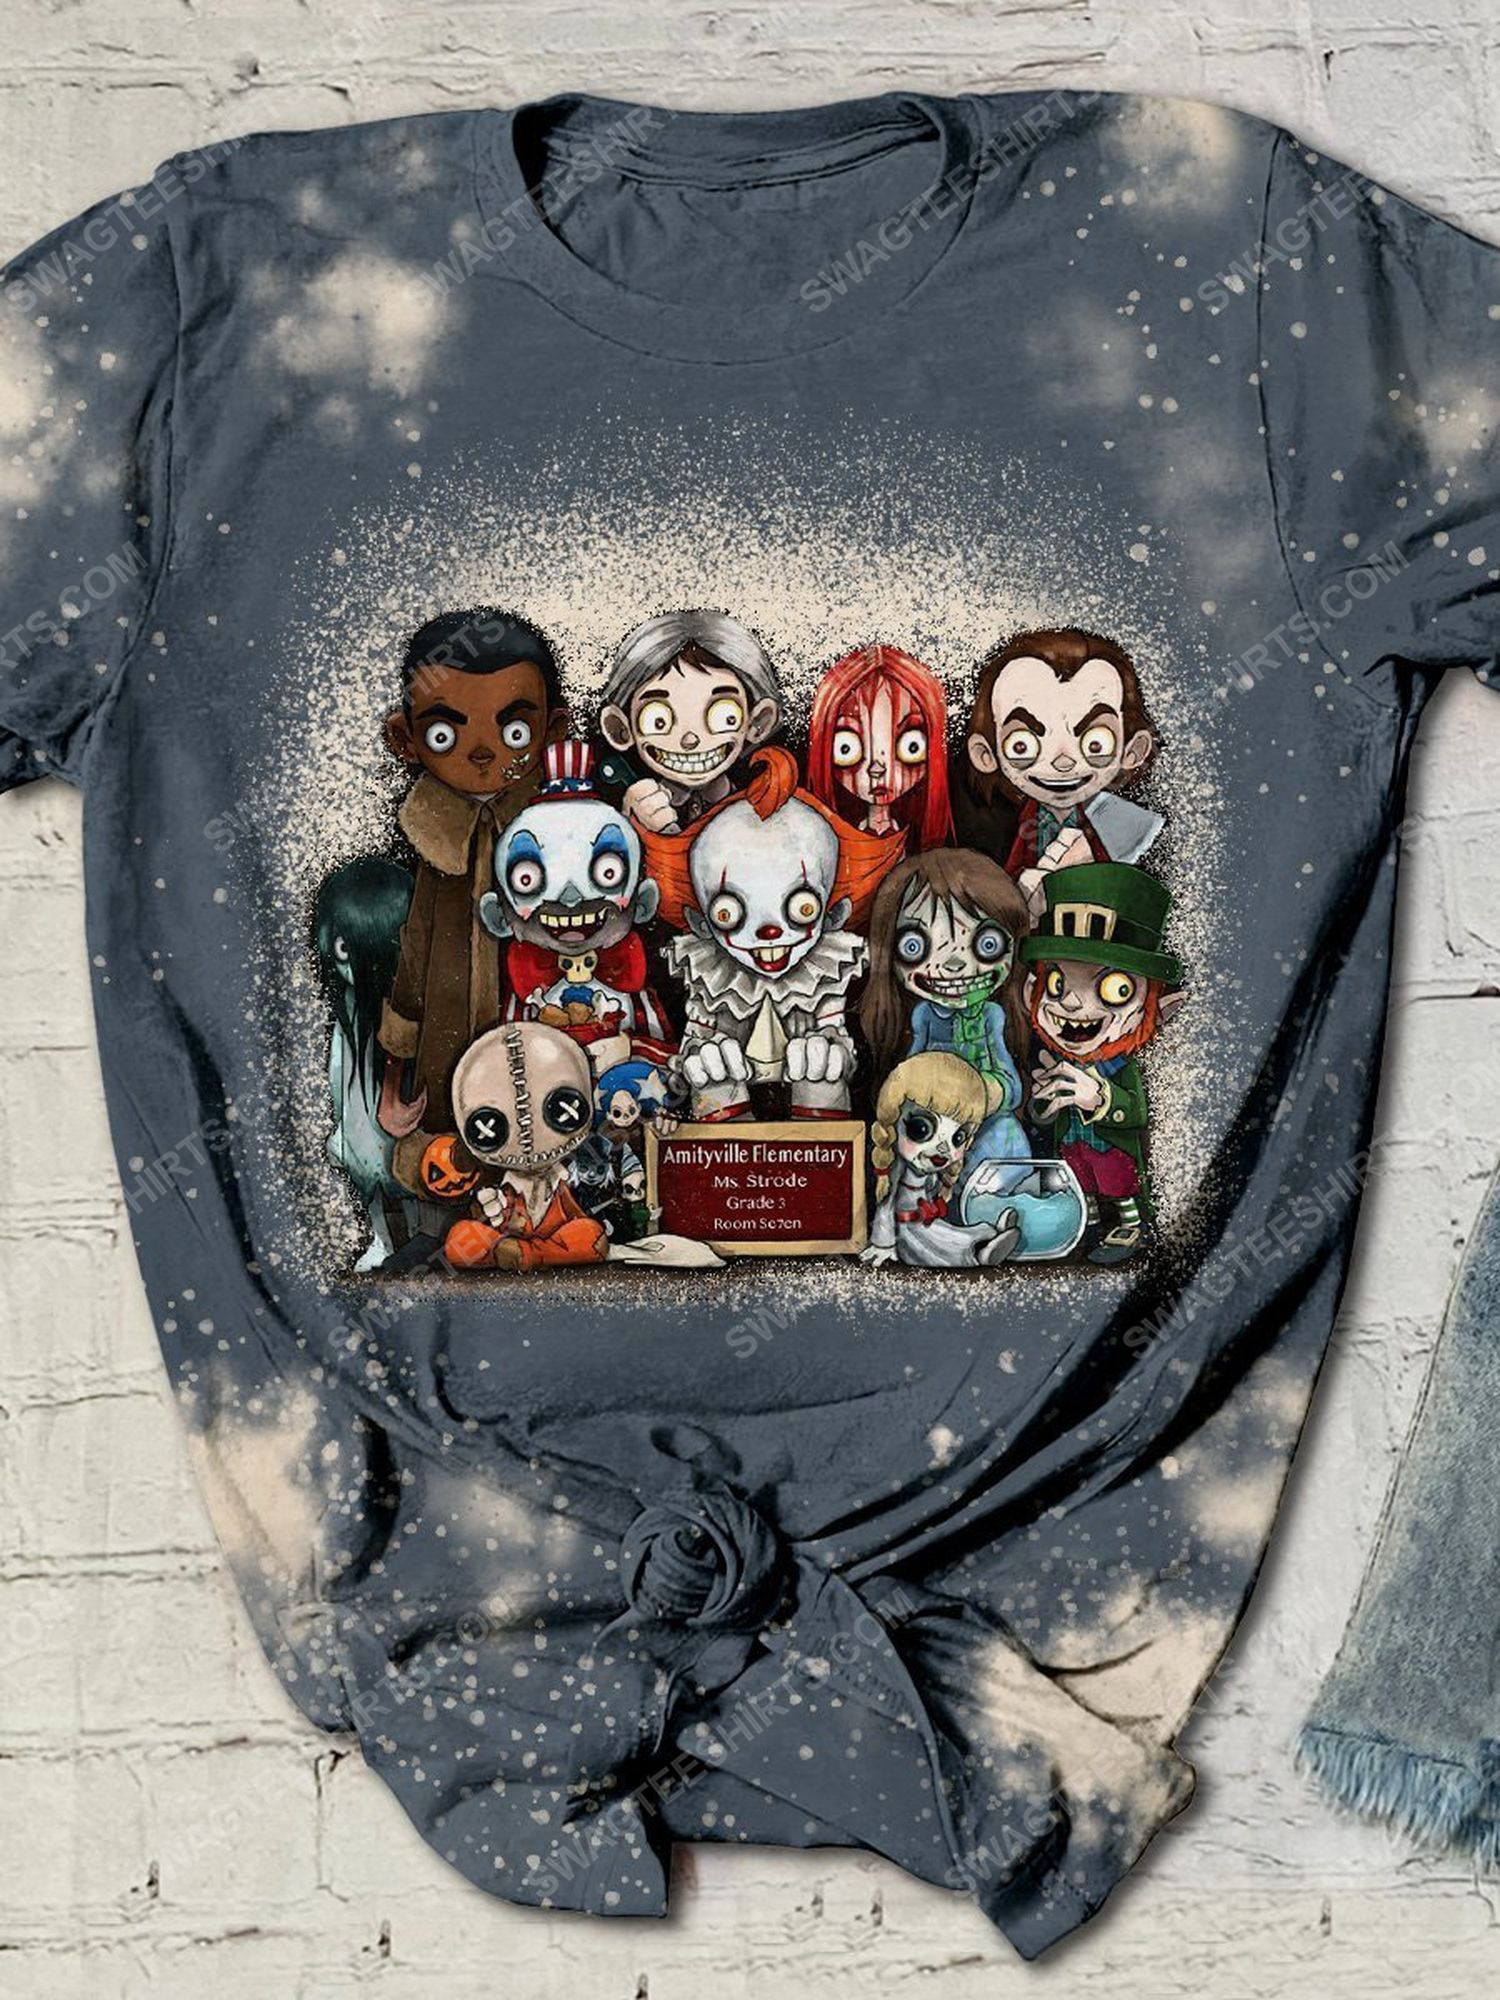 Halloween night and serial killer movies chibi bleached shirt 1 - Copy (2)